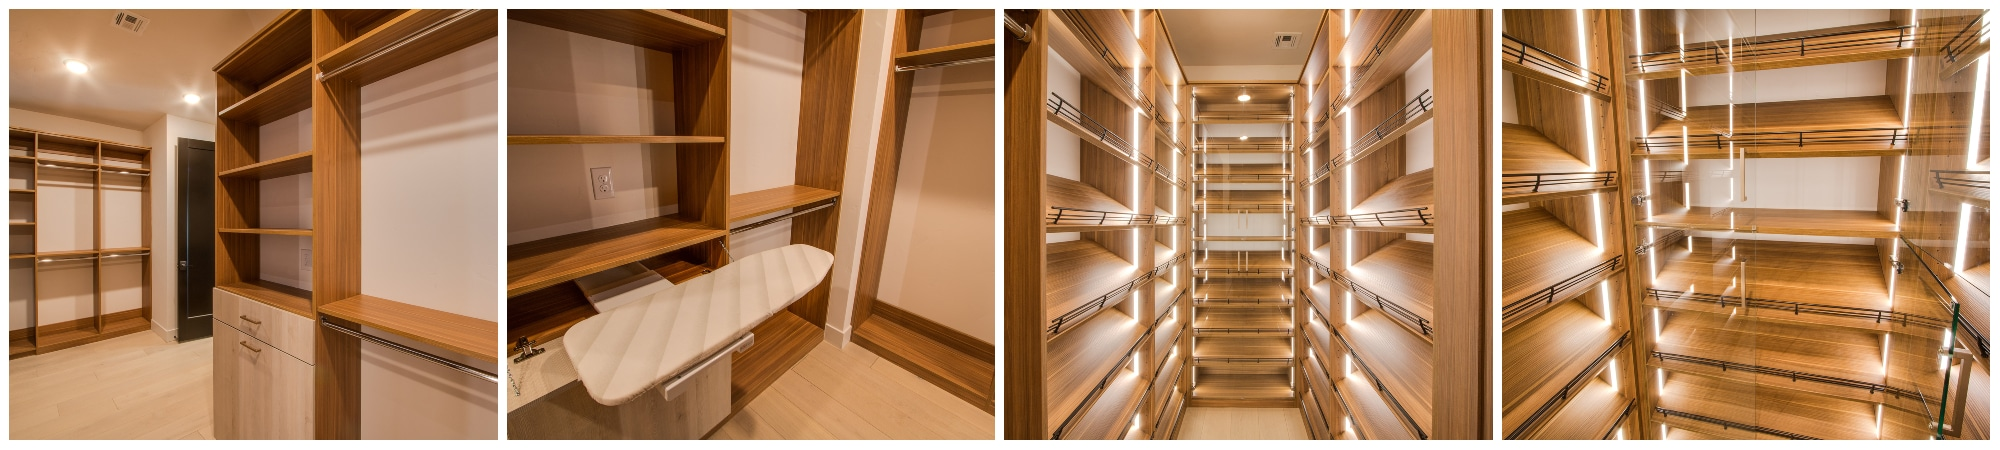 luxury bedroom closet in cypress live finish with short hang and long hang shelves cabinets and shoe racks